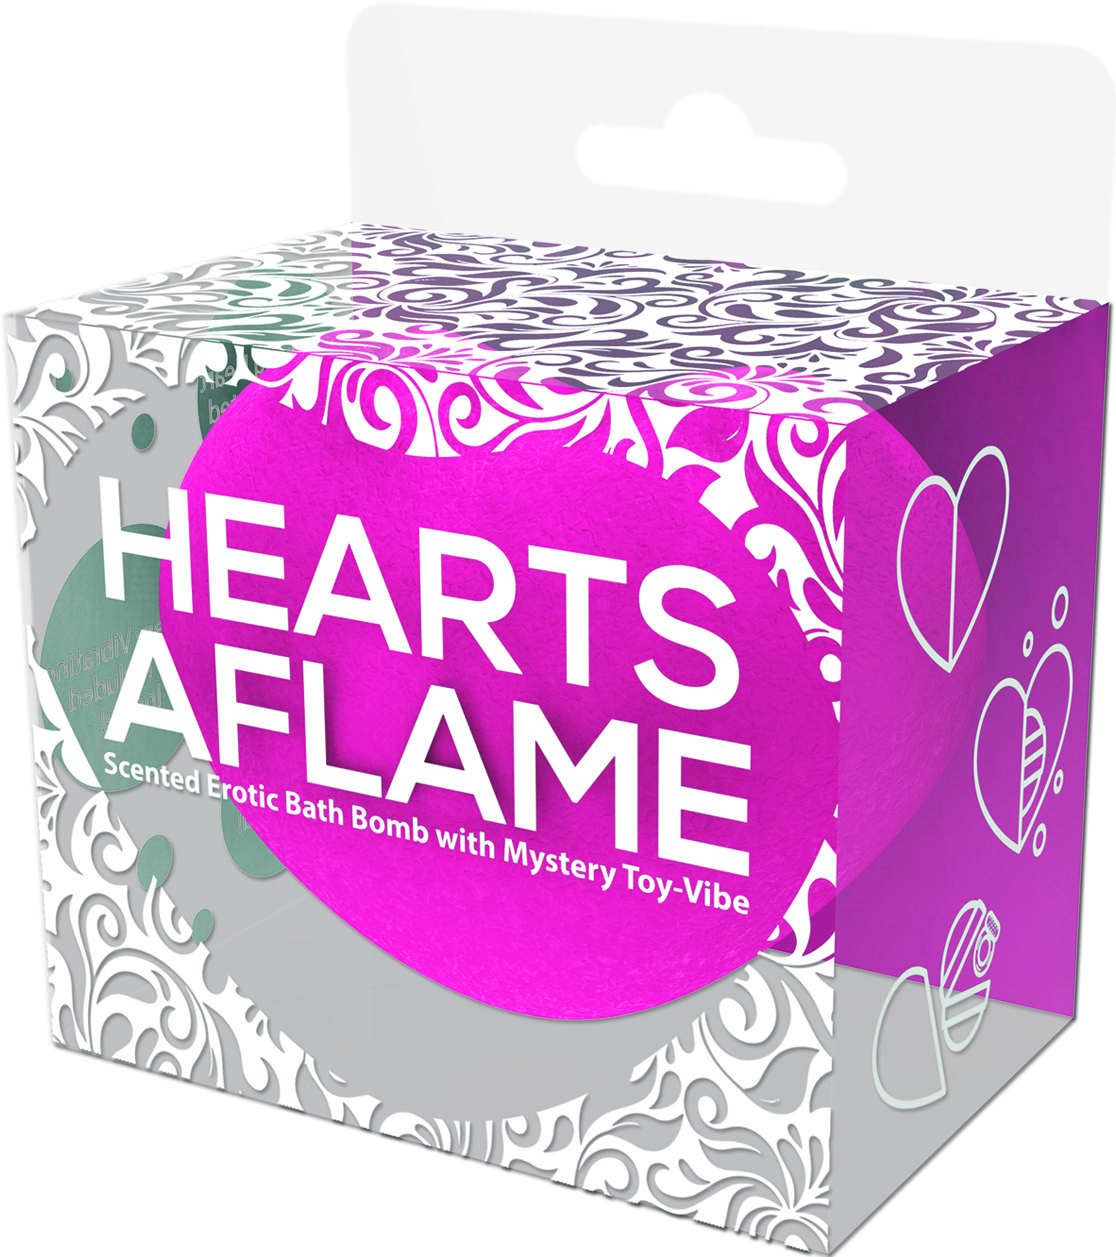 HEARTS AFLAME EROTIC BATH BOMB